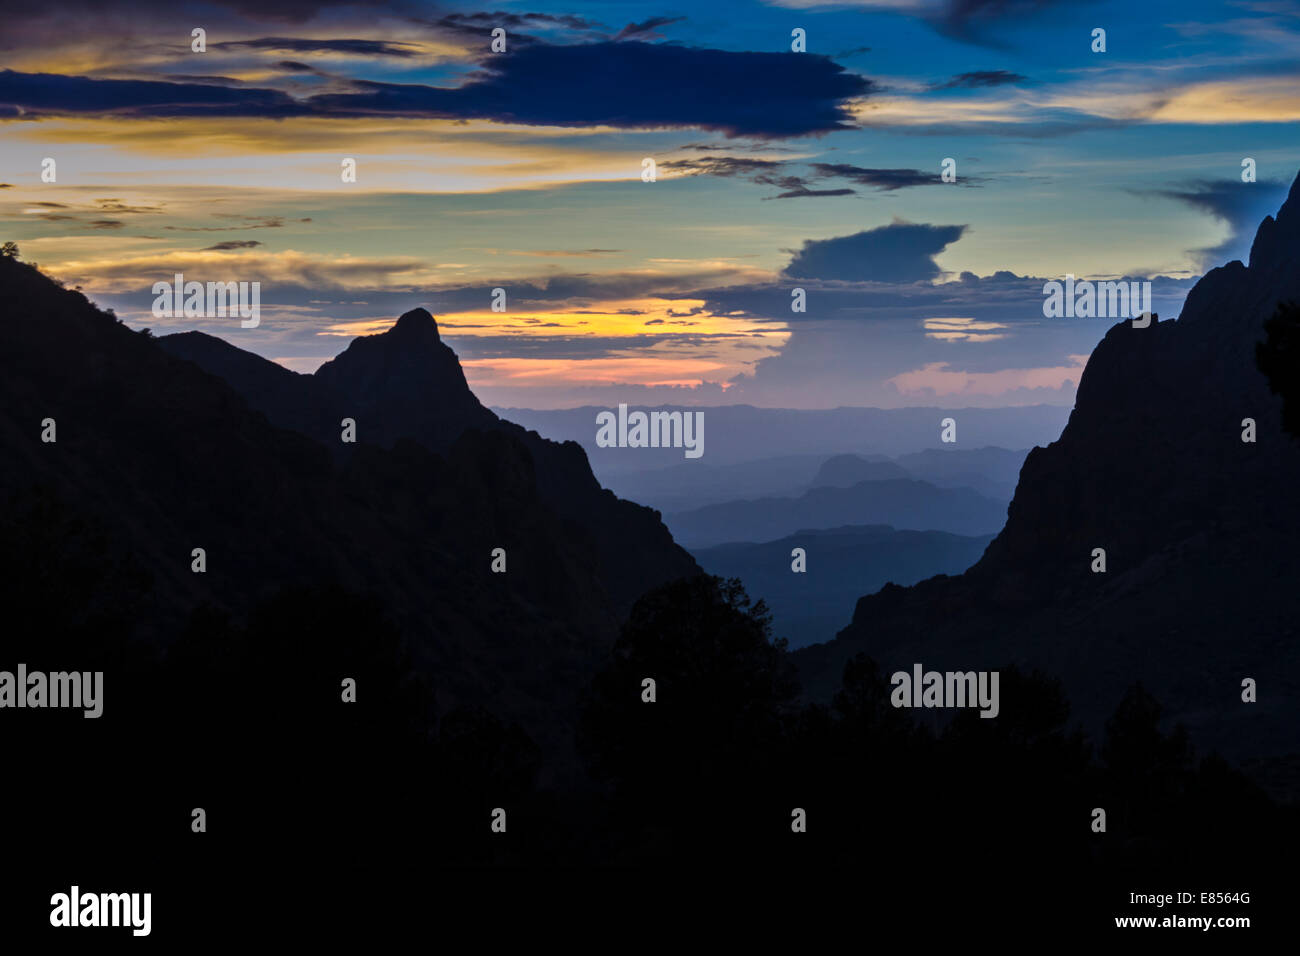 The Window, an iconic view in the Chisos Mountains, silhouetted at sunset in Big Bend National Park. Stock Photo